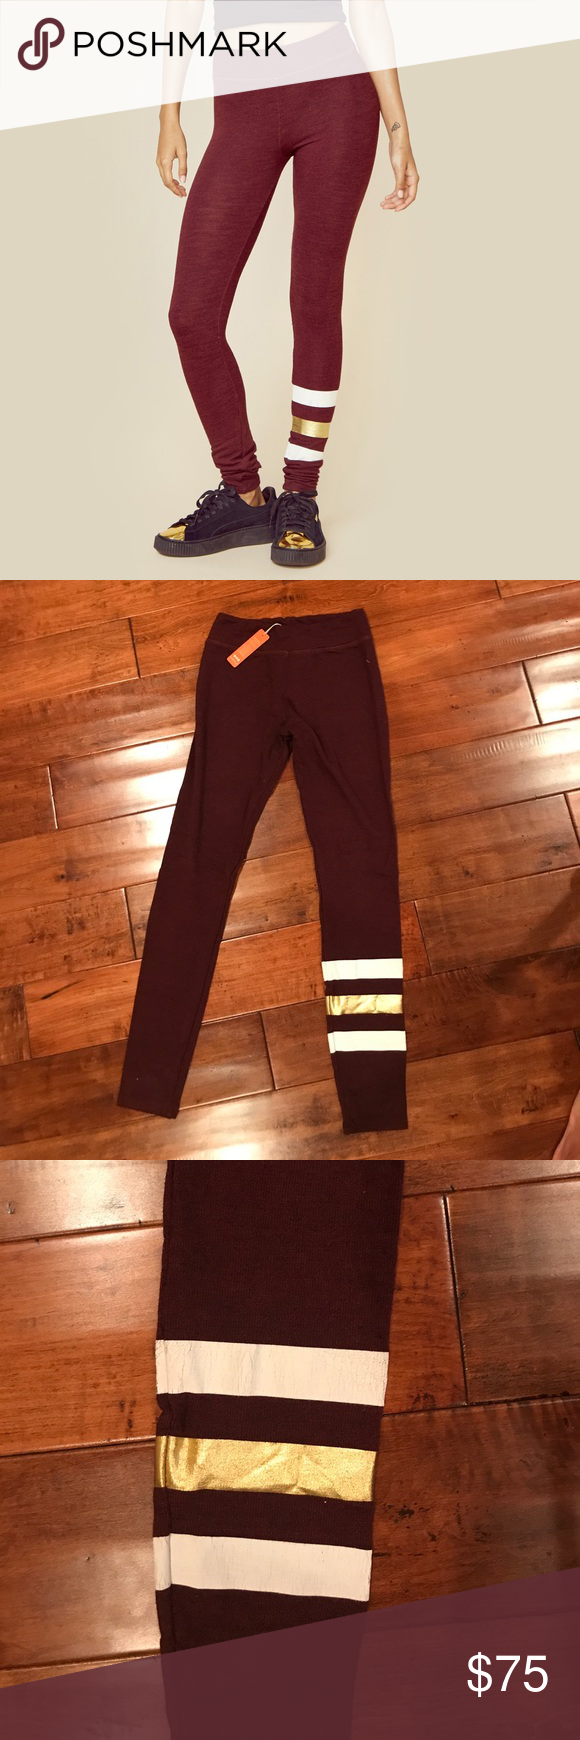 Sundry maroon skinny sweatpants, size 1 These maroon Sundry skinny sweatpants feature their signature stripe at the bottom in white and gold. Brand new with tags Sundry Pants Track Pants & Joggers